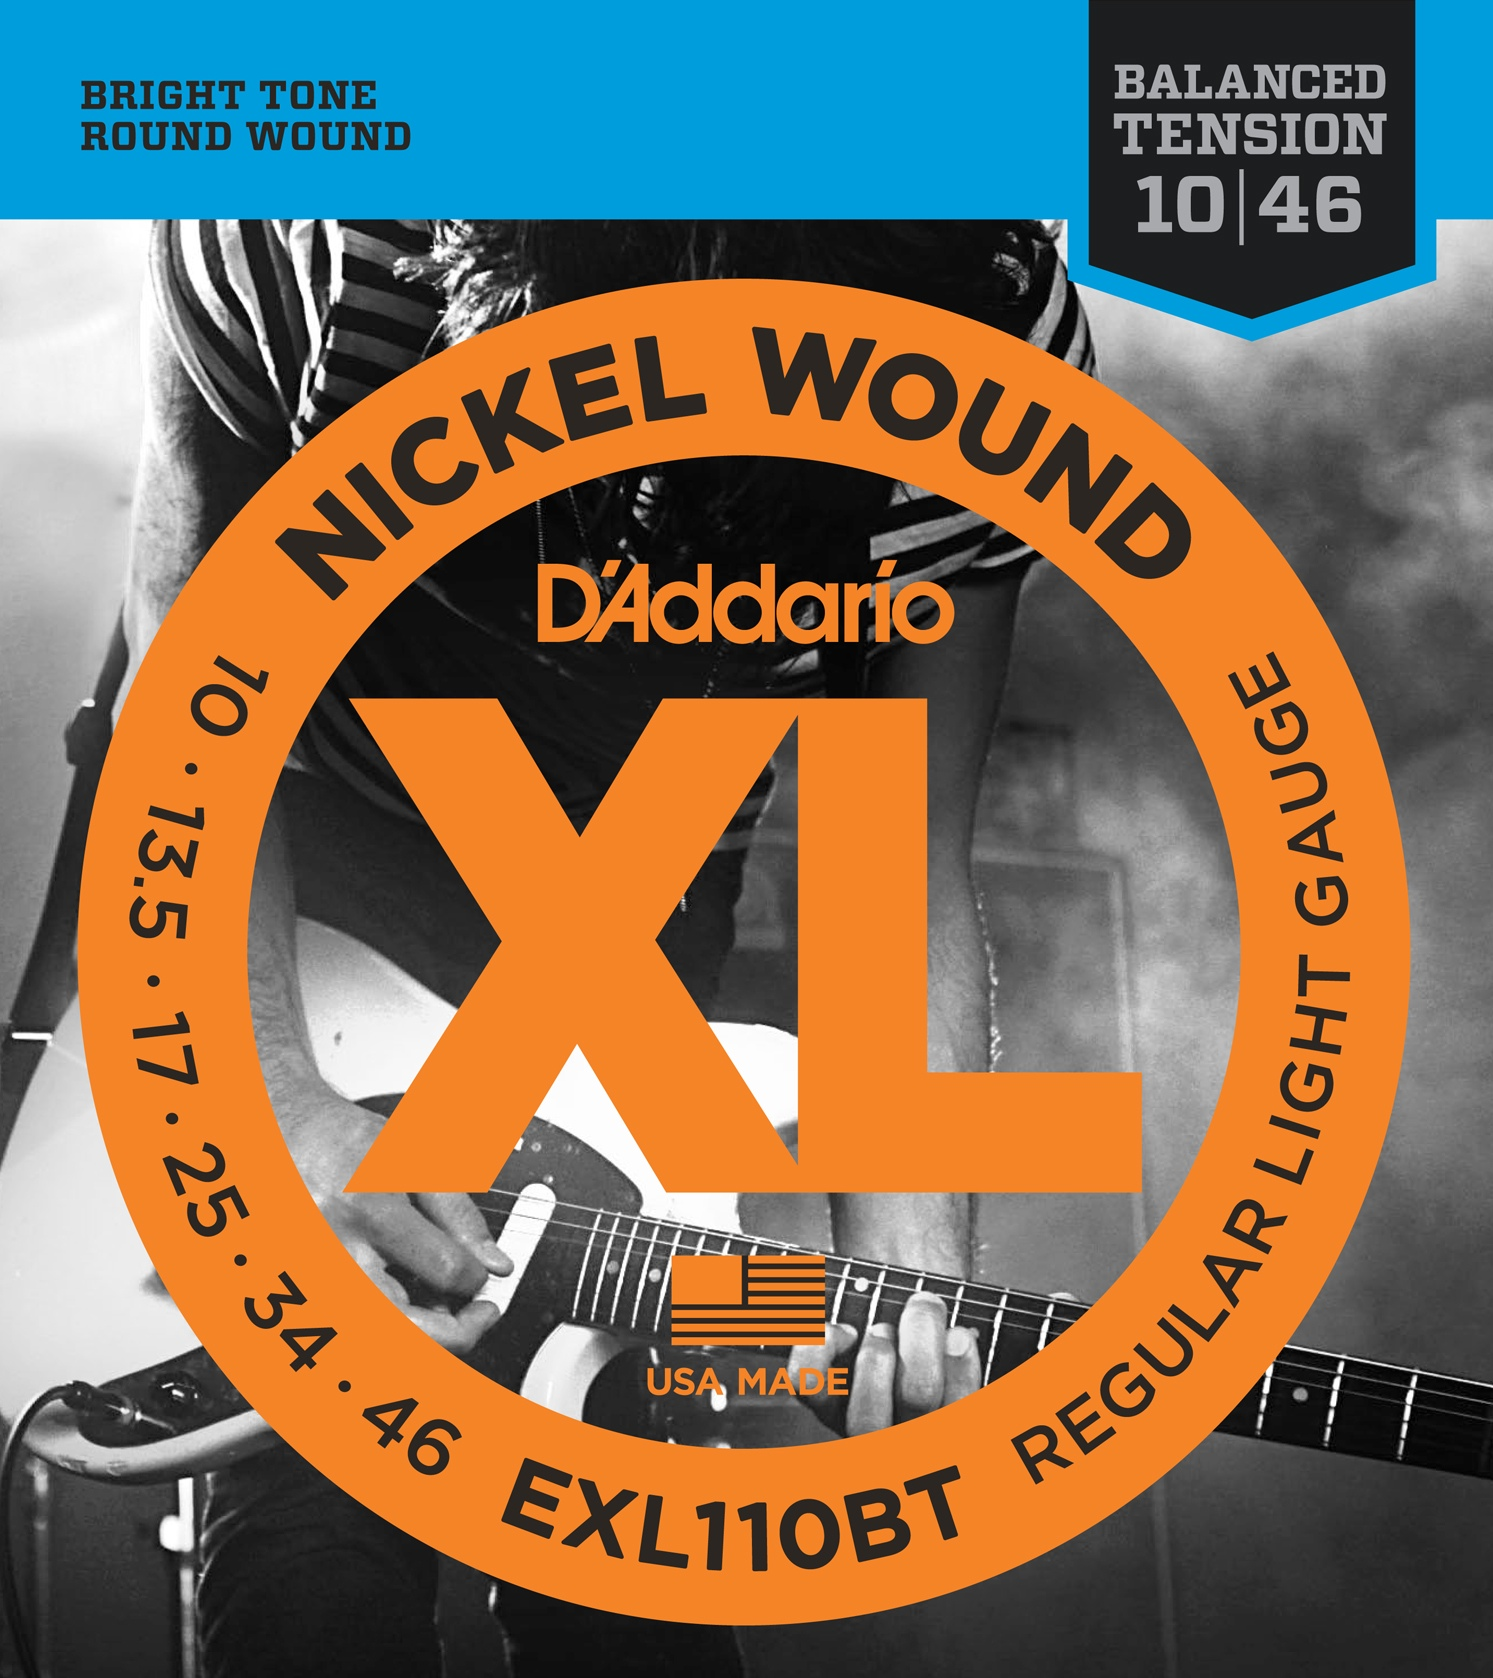 NAMM News: D'Addario Balanced Tension Strings